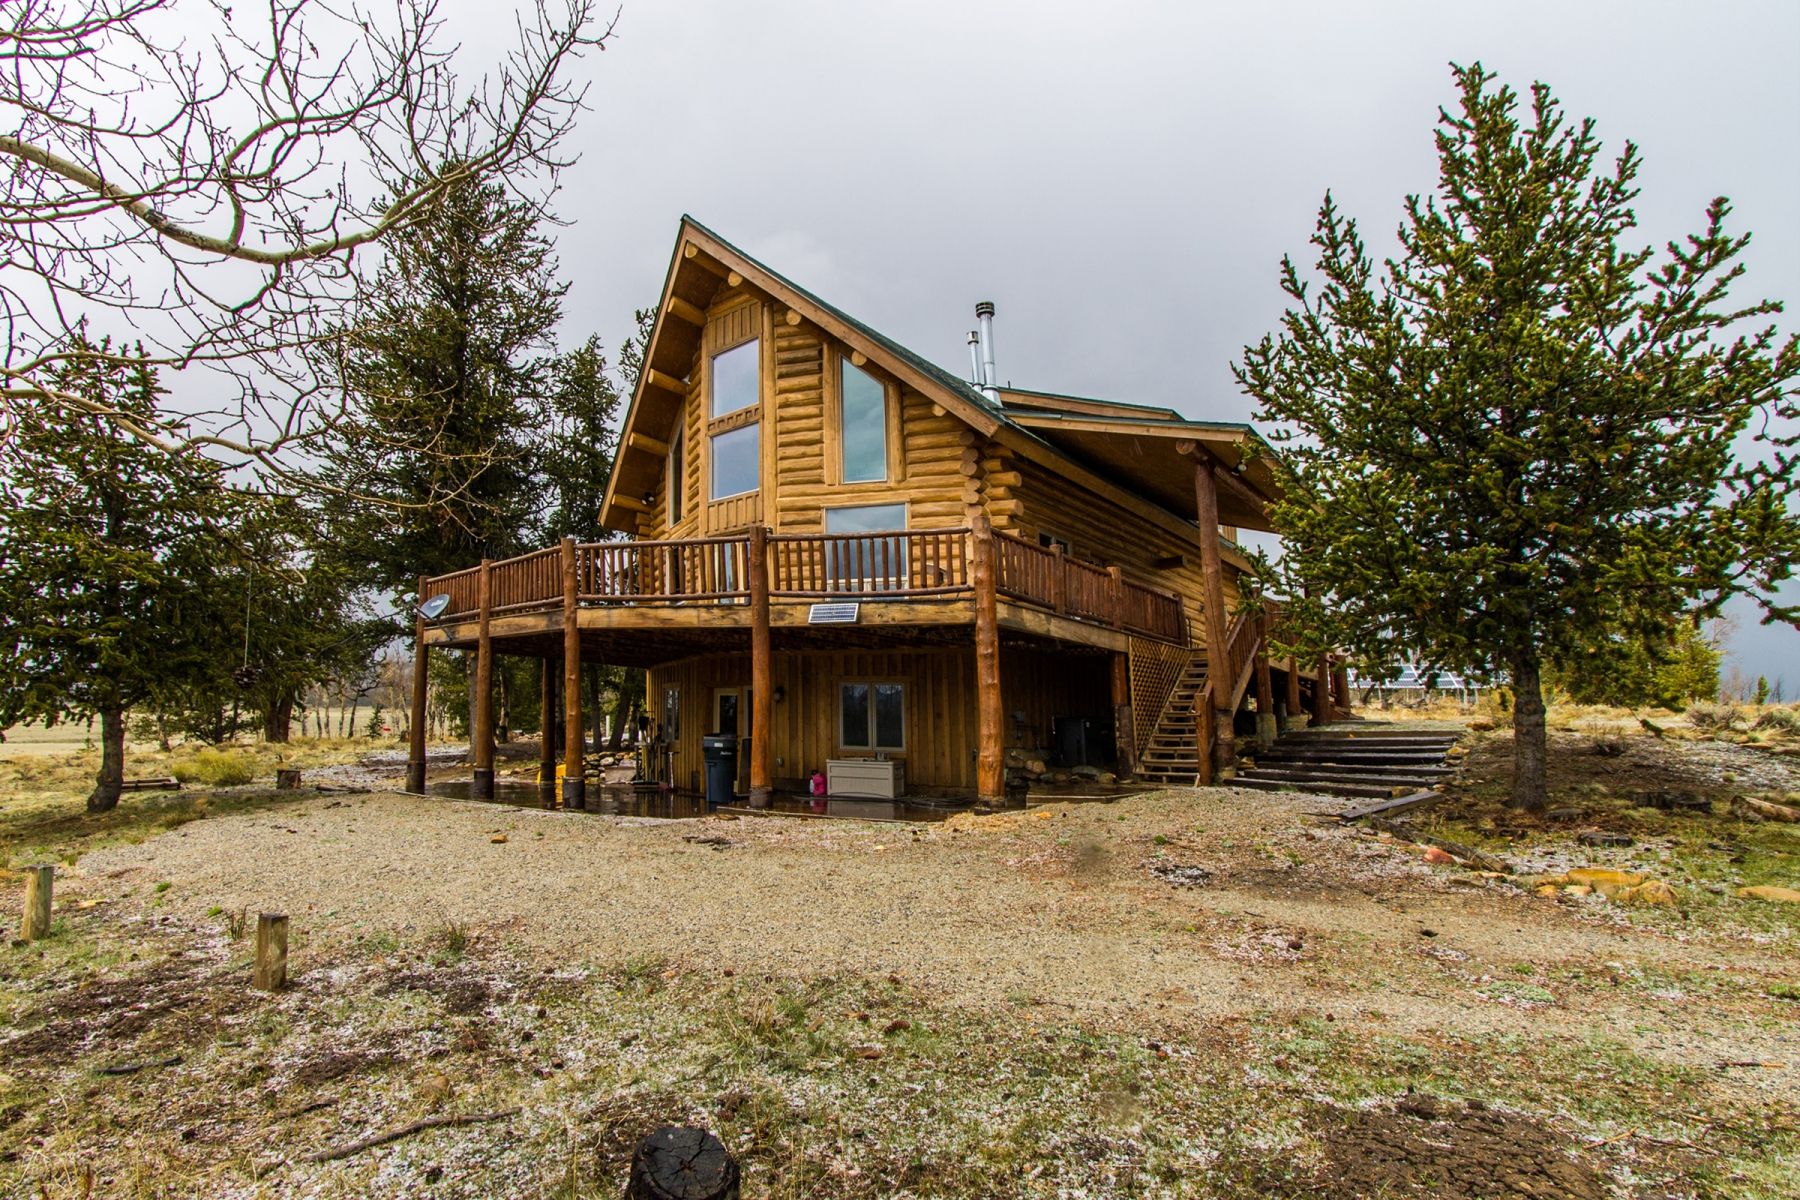 Property For Sale at Updated Mountain Cabin on 35 Acres